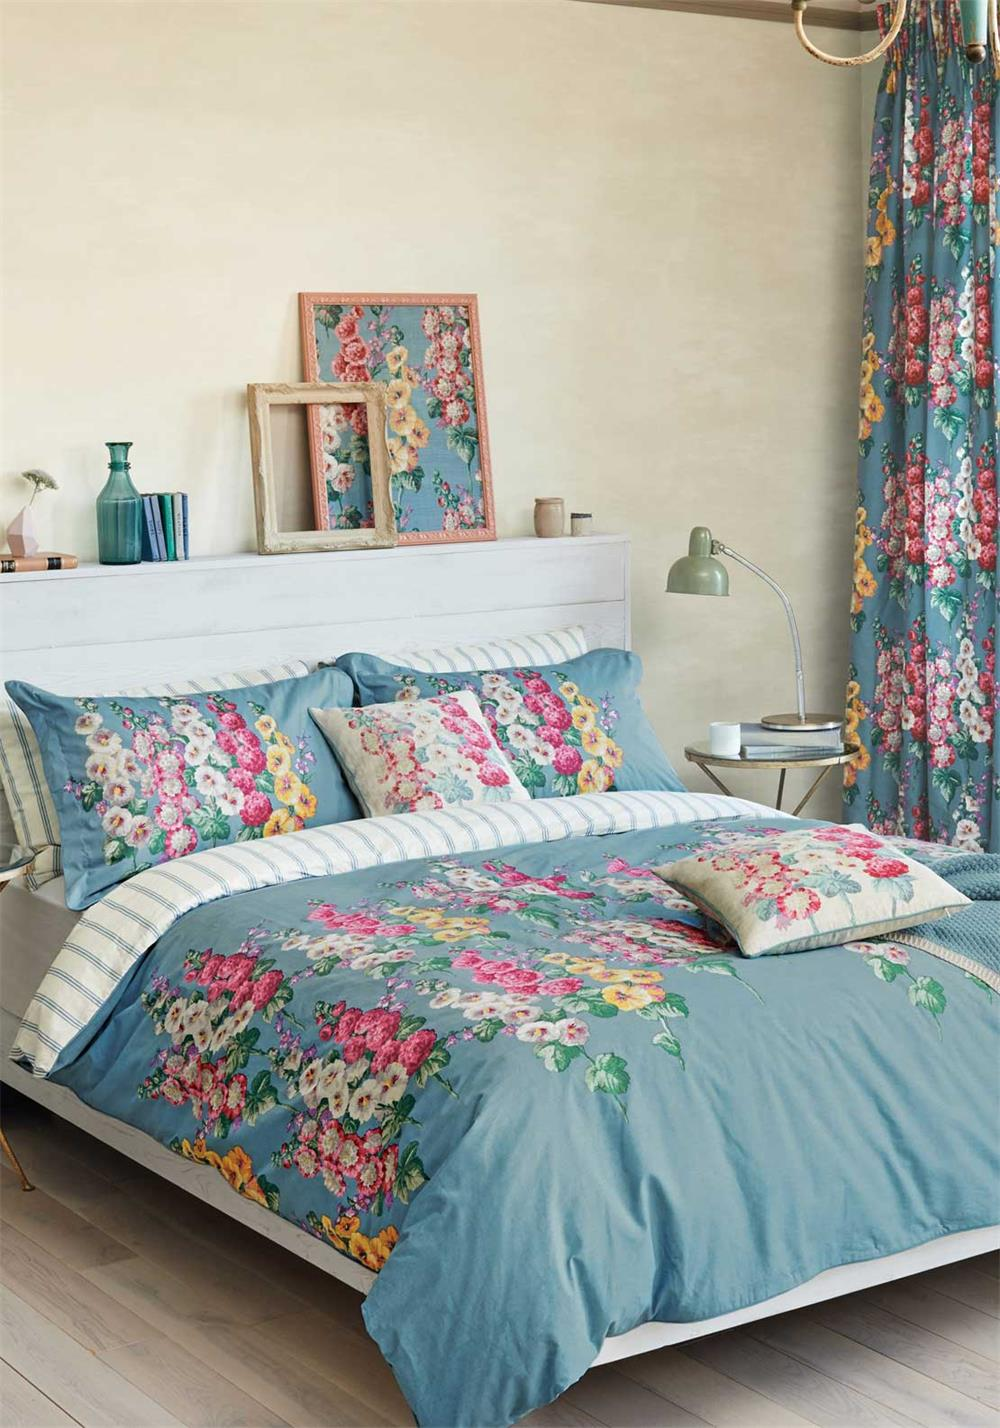 Sanderson Hollyhocks Duvet Cover, Floral